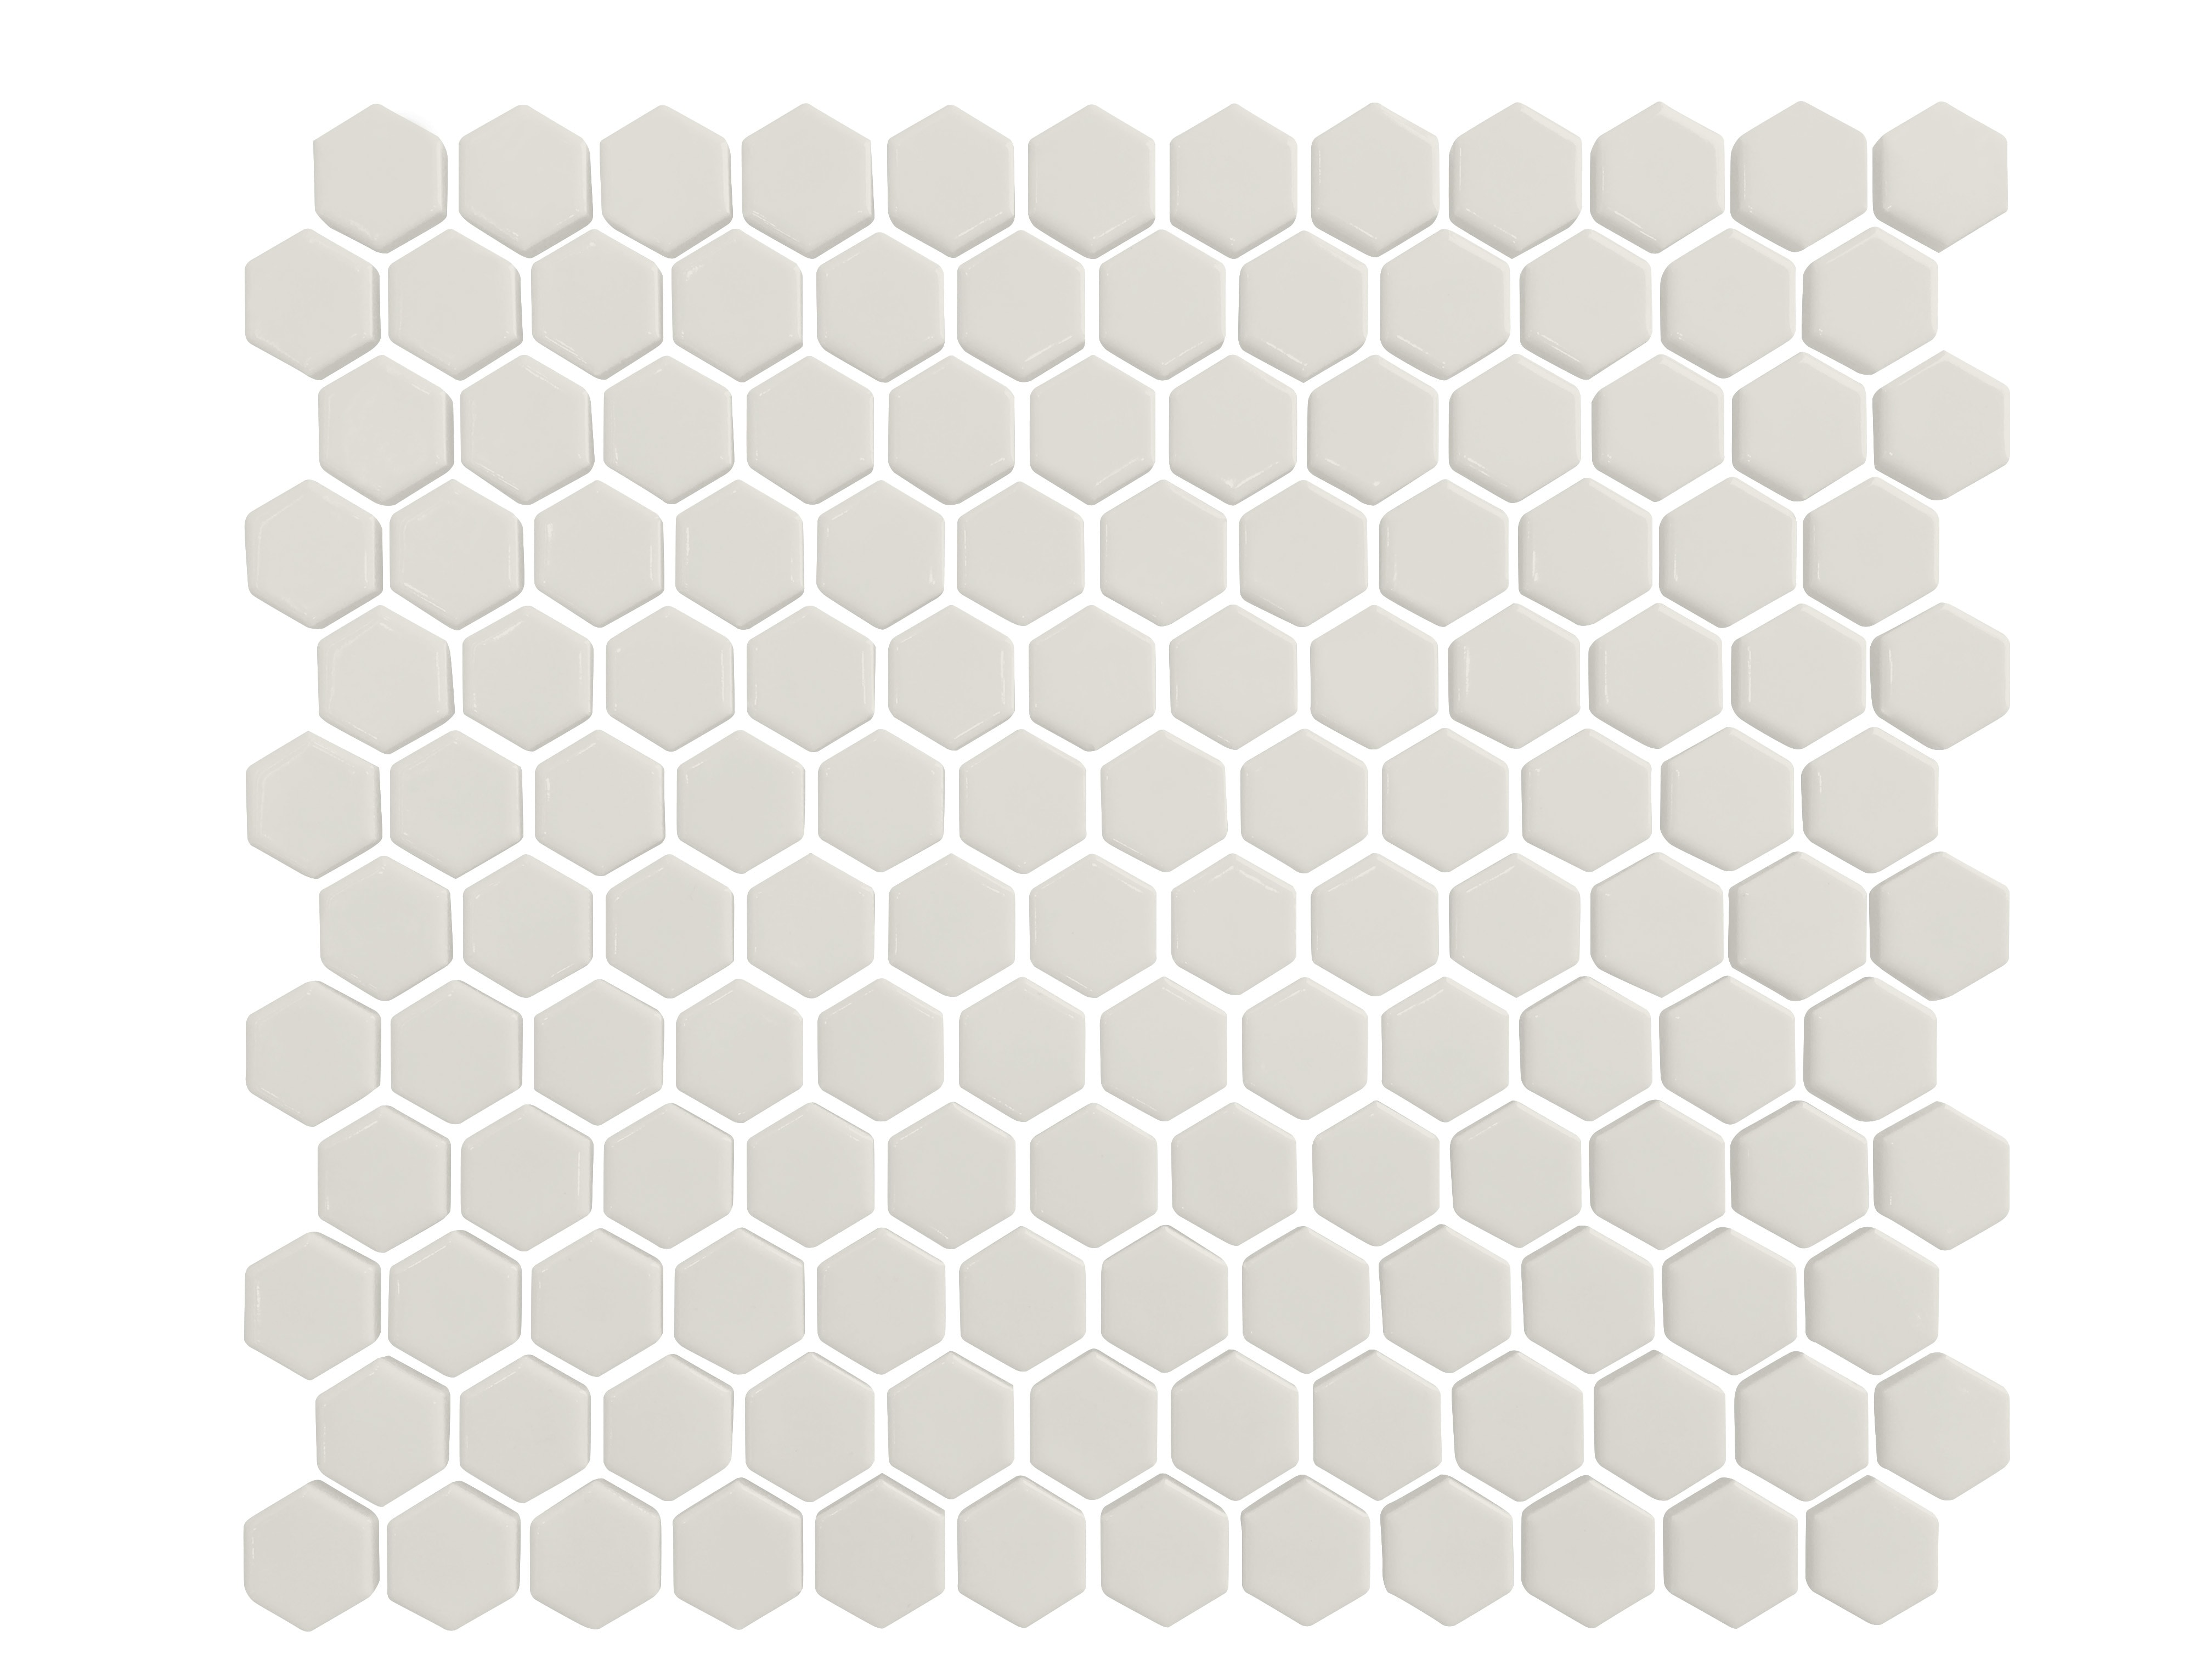 """11.75 x 10.25 x 0.2 inches / Glossy Retro 1"""" Hexagon Porcelain Glossy Wall Tile in White 0"""